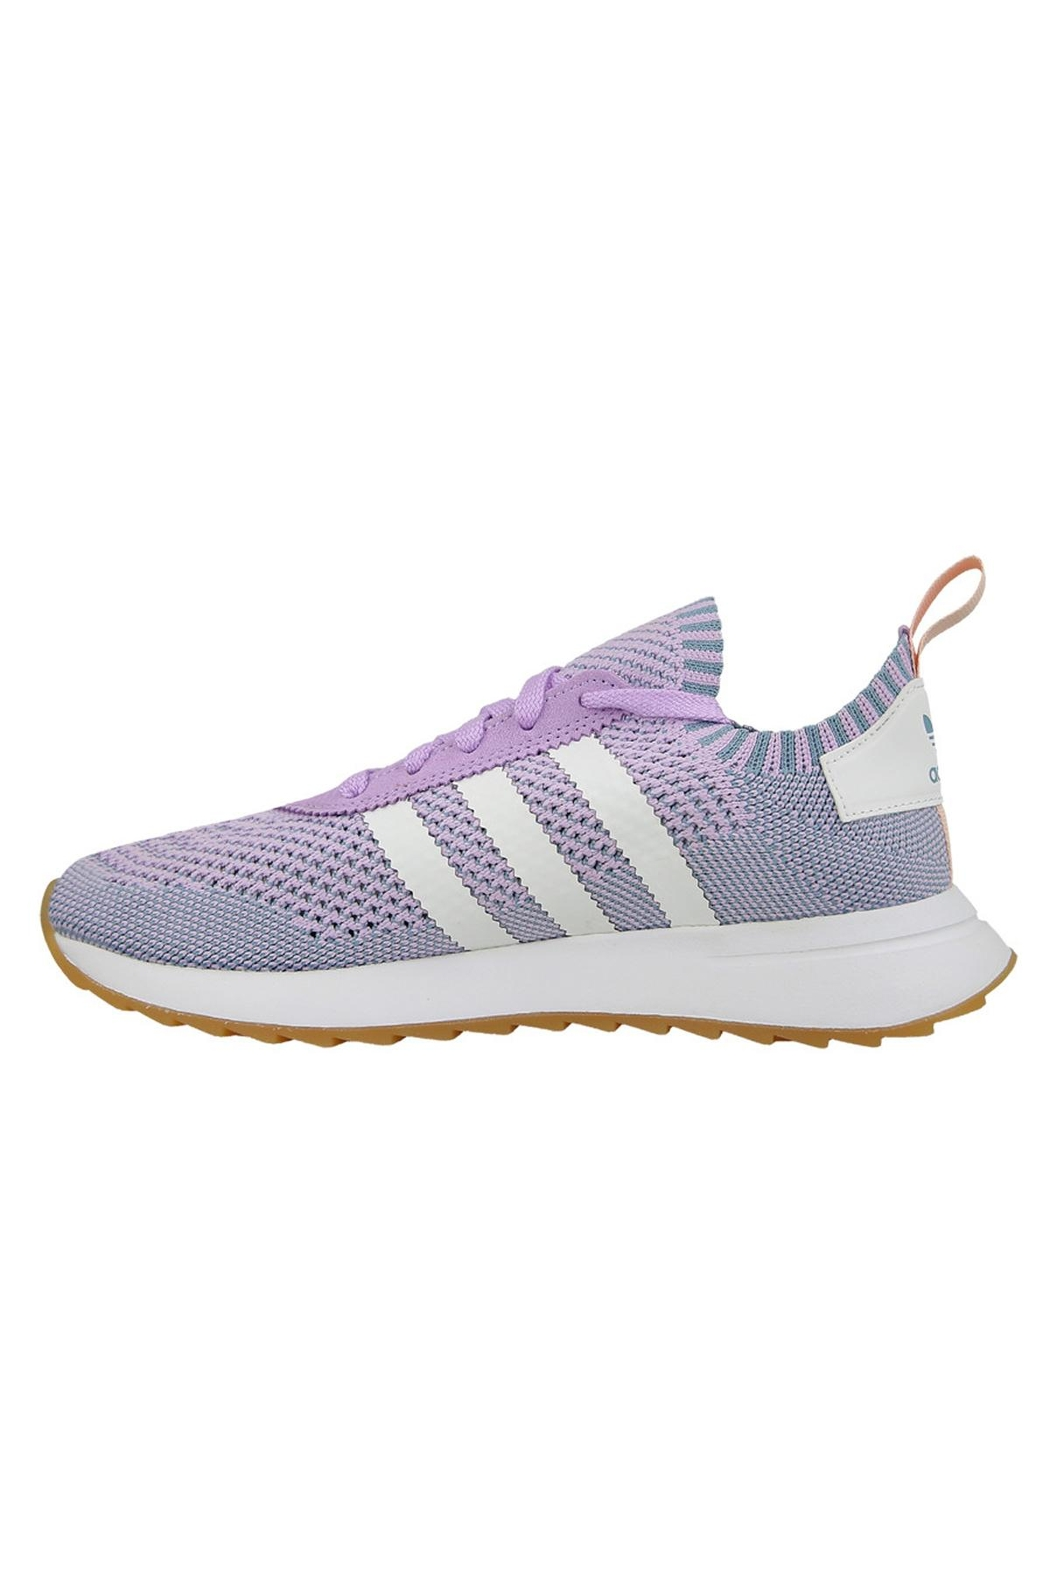 adidas Flashback Primeknit Shoes - Main Image